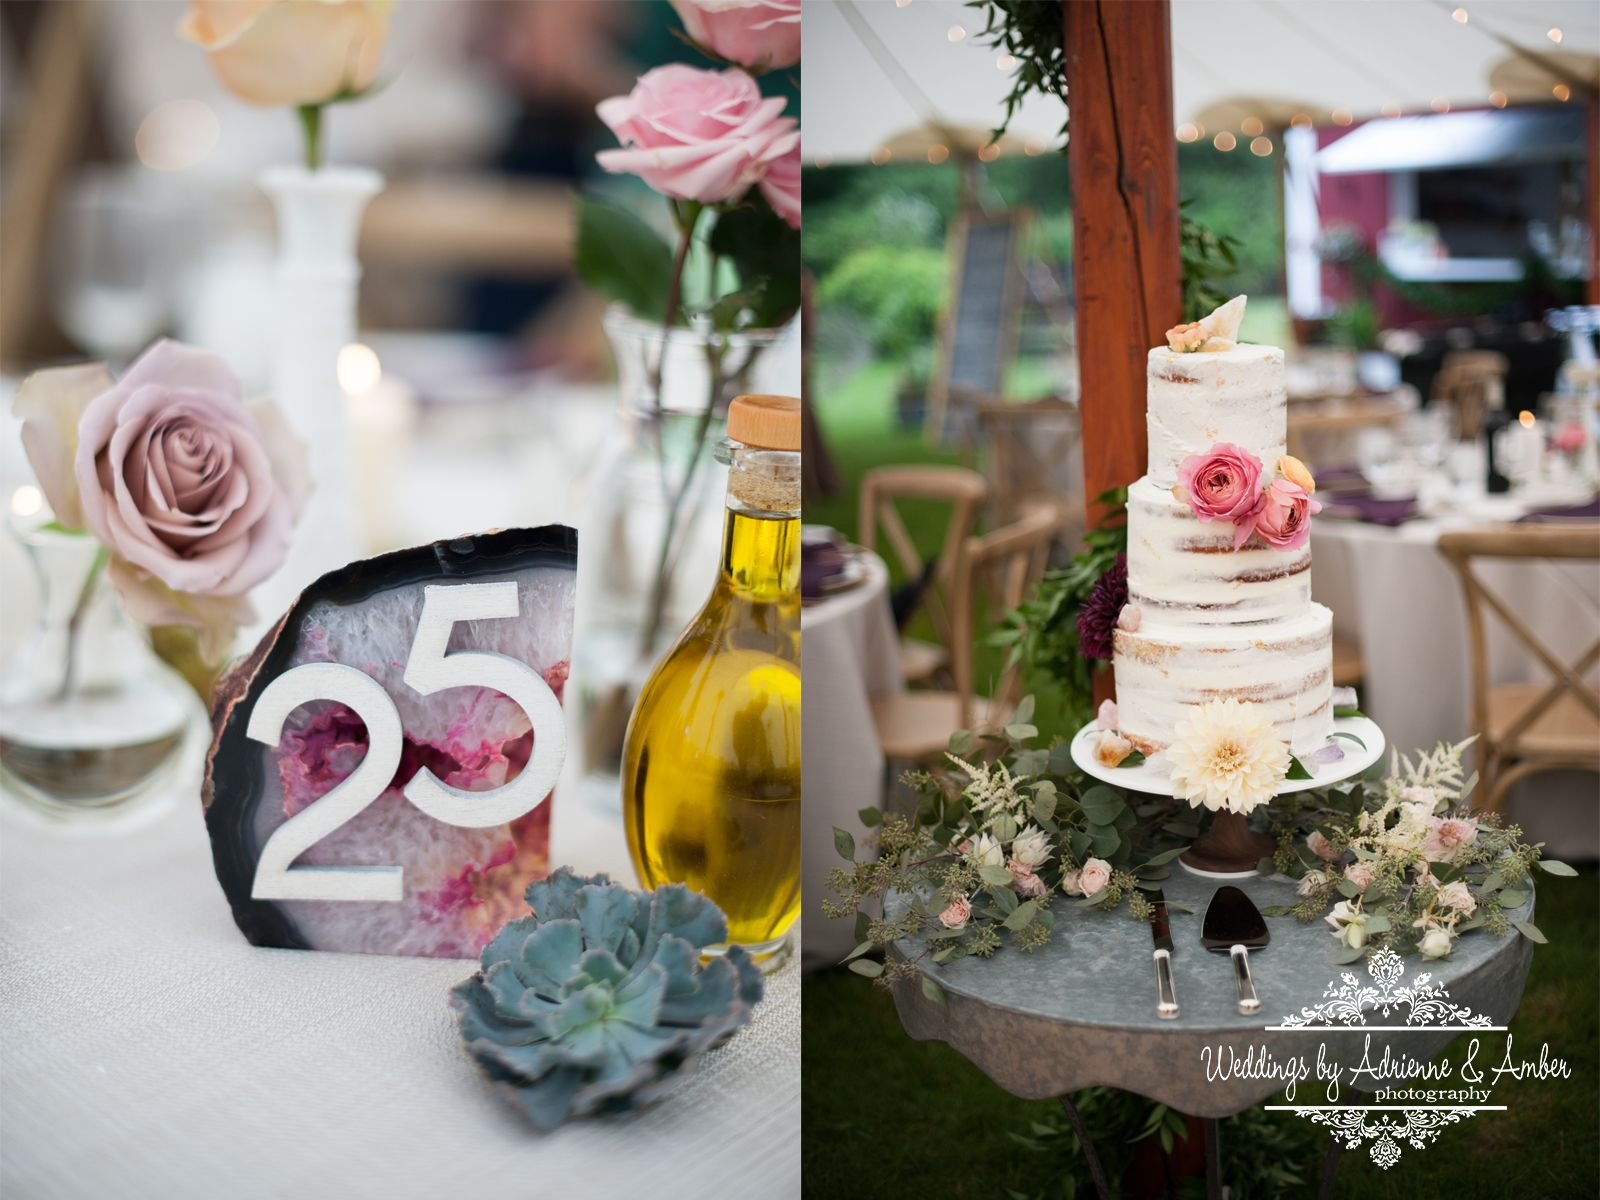 Barn wedding cake table ideas  Royal Oak Wedding Photographers Weddings by Adrienne u Amber